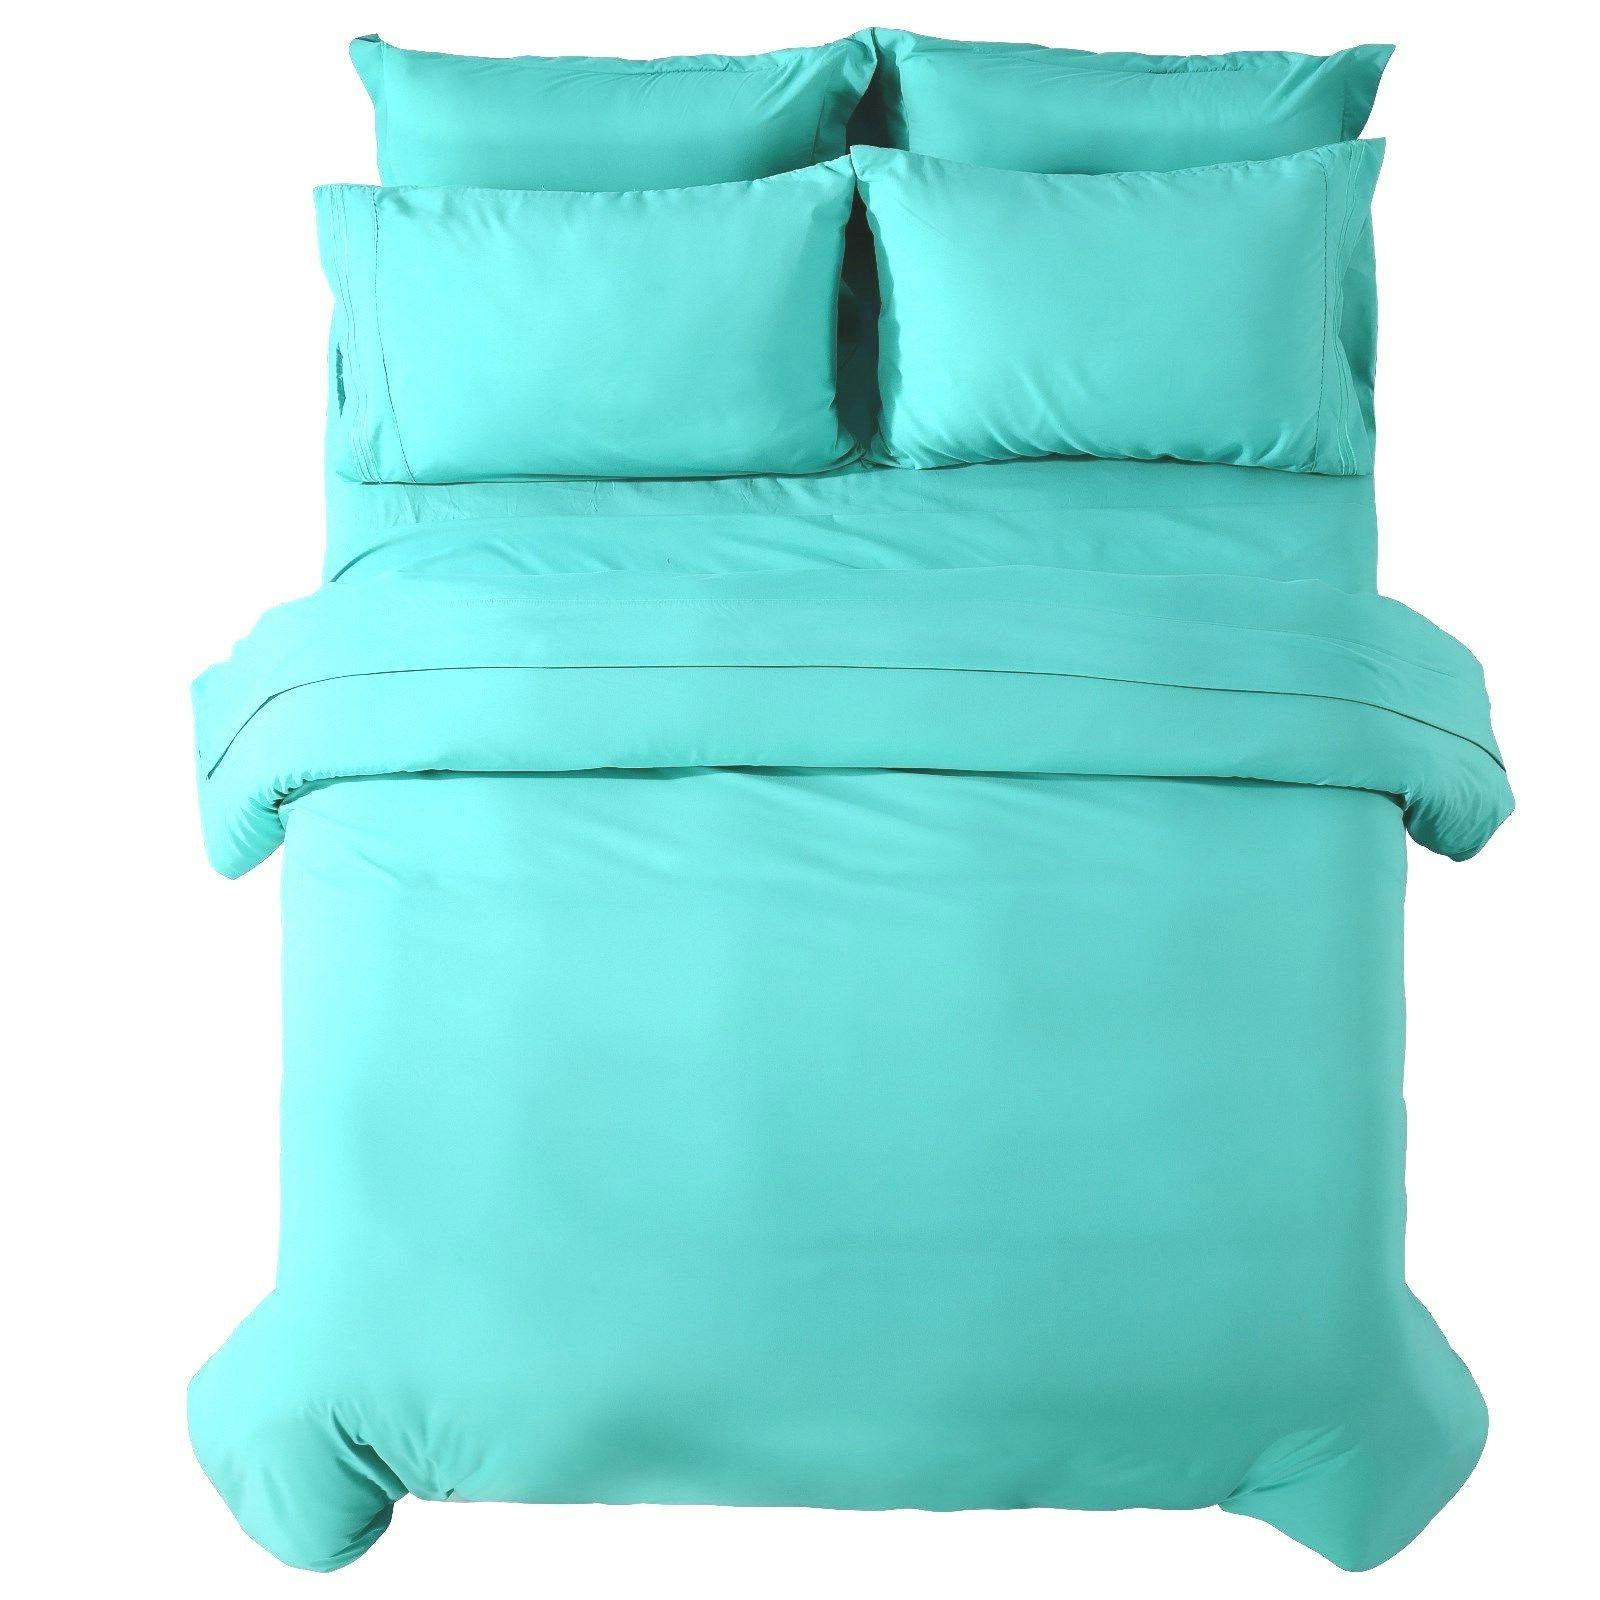 Duvet And Egyptian Comfort 3 Piece Set - Sizes